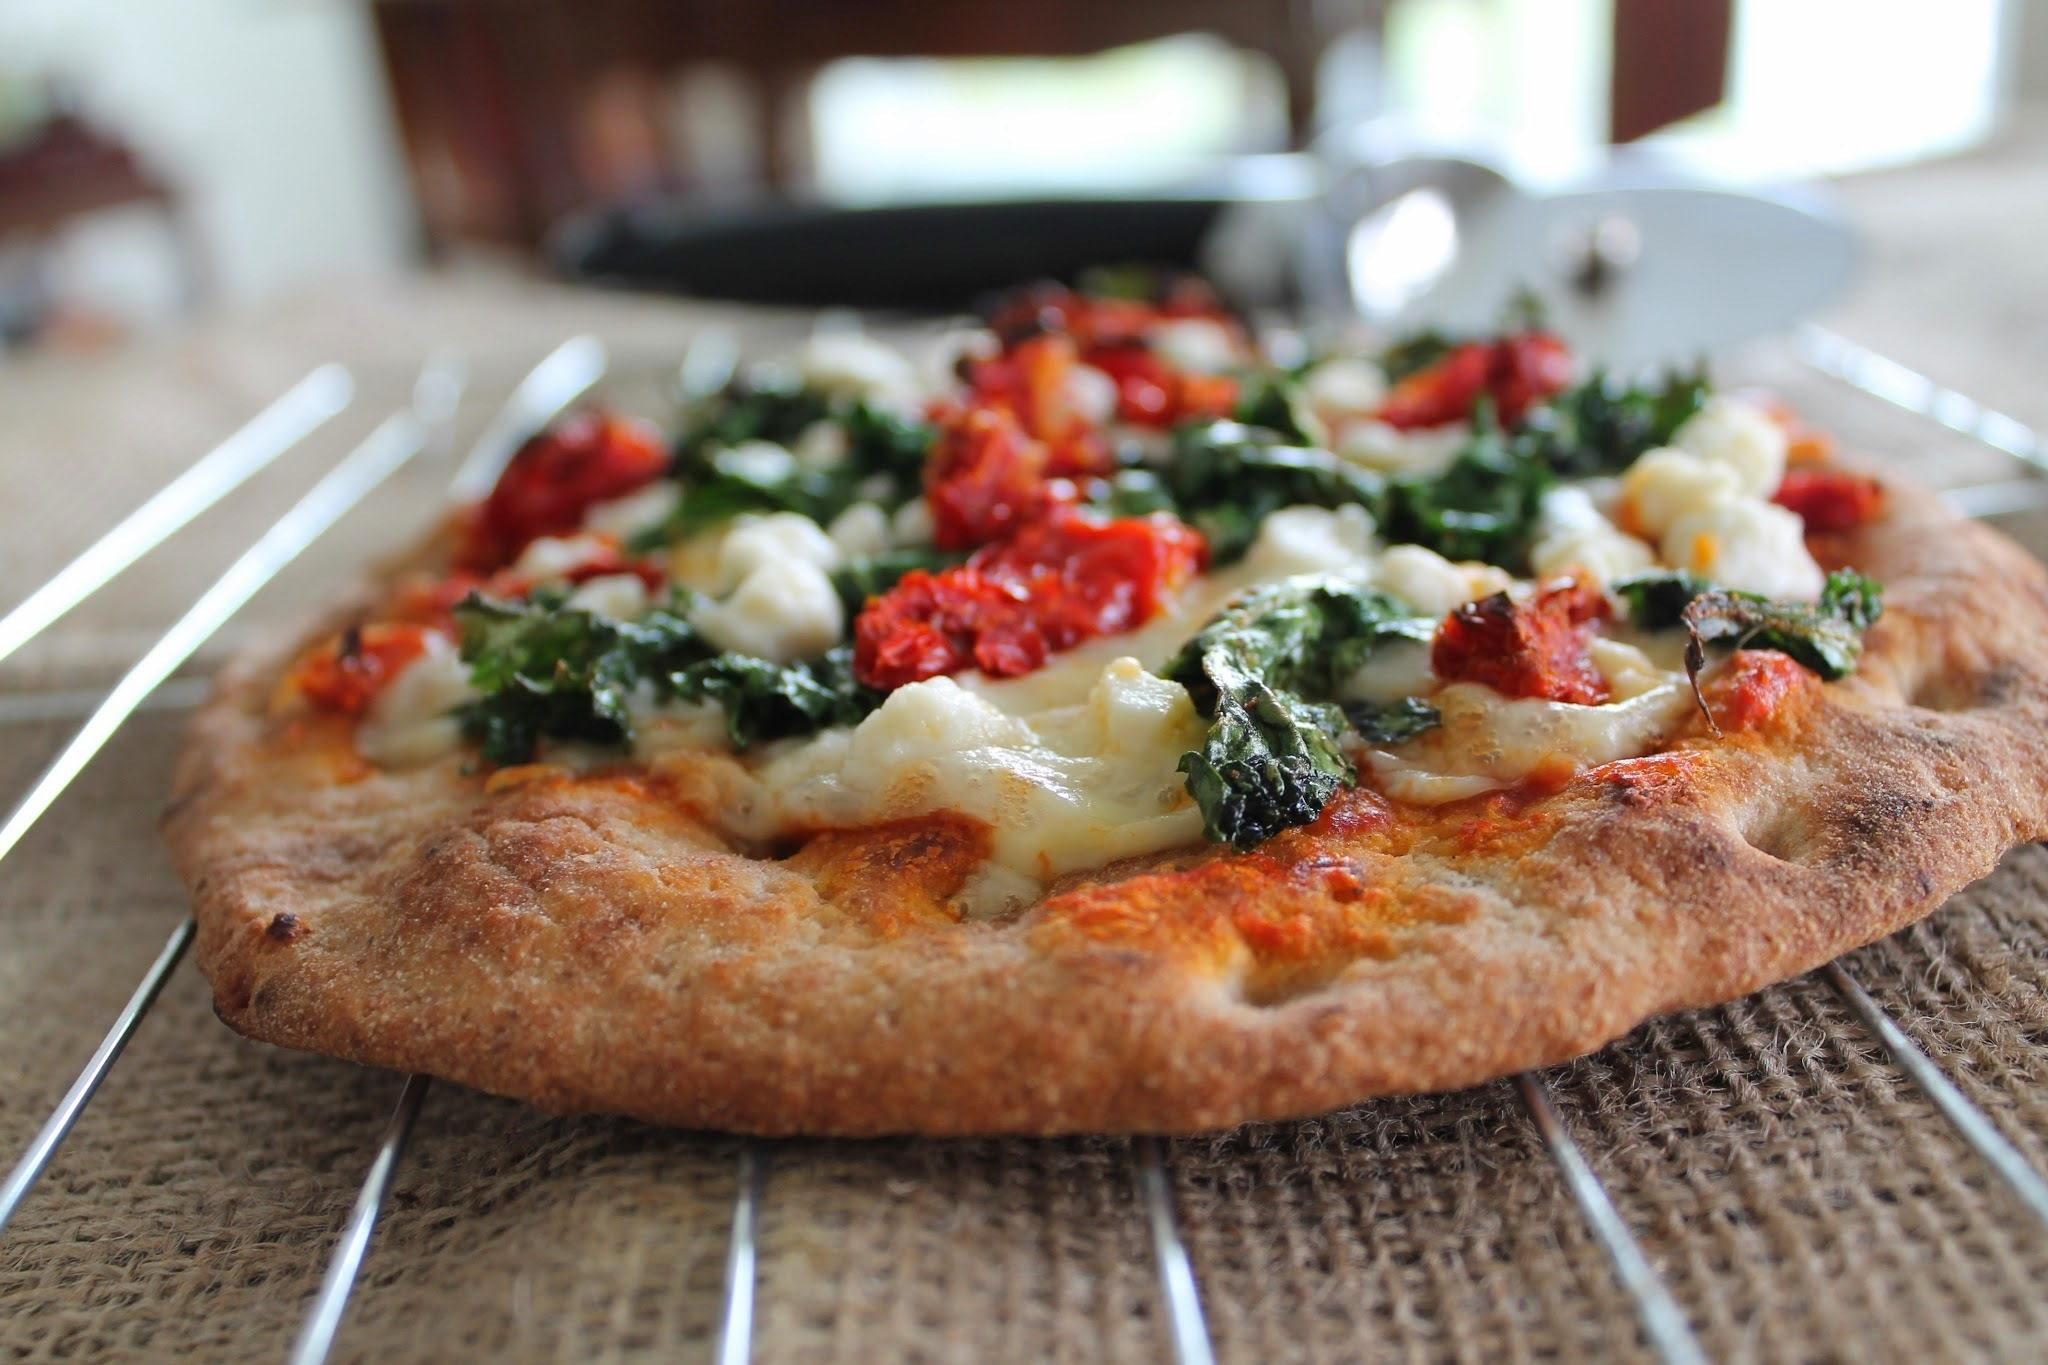 Flatbread Pizza with Sundried Tomatoes, Kale, & Goat Cheese